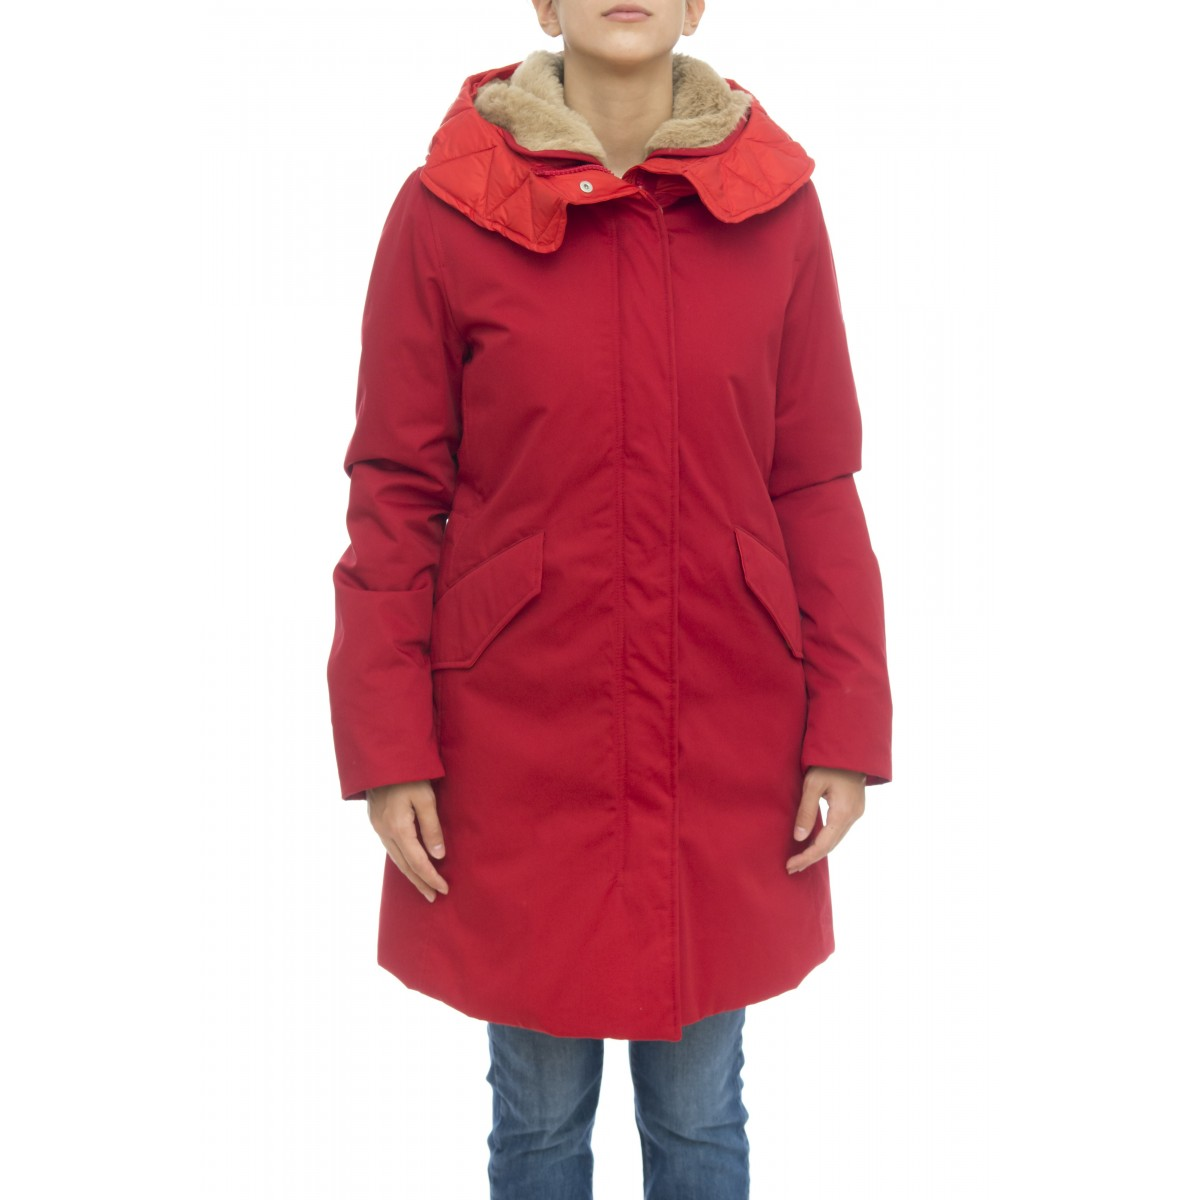 Piumino - W863 bb10 sun walley parka interno alpaca staccabile